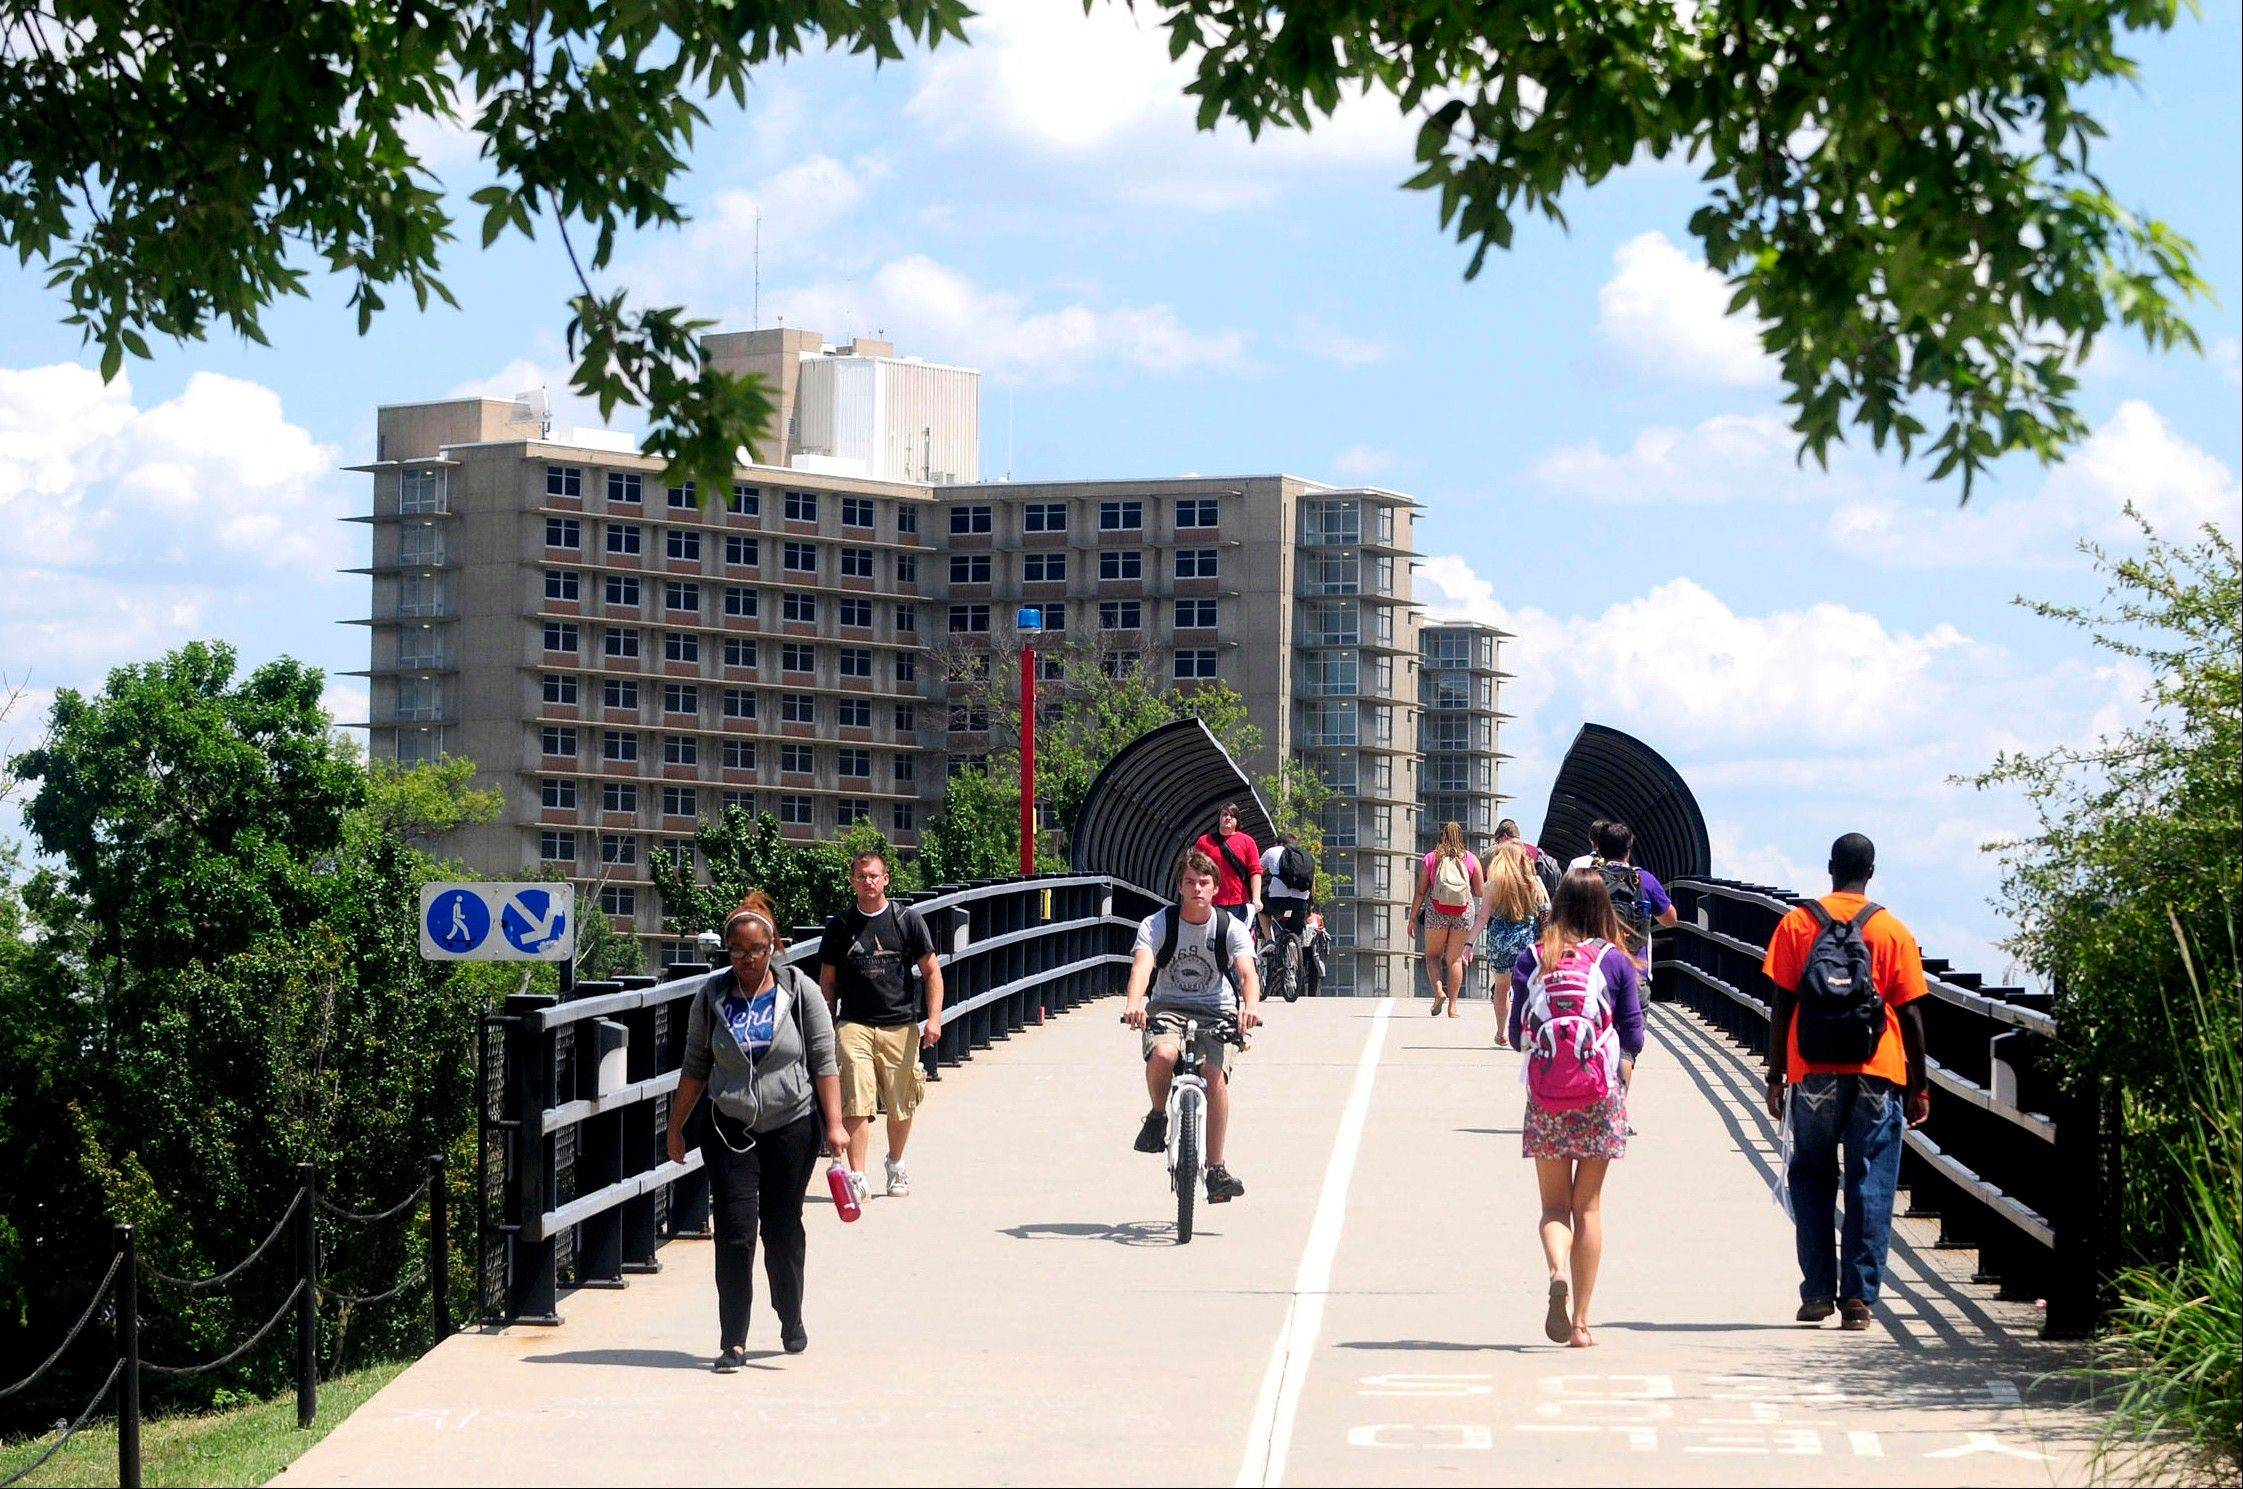 Students walk across a bridge on the first day of classes at Southern Illinois University in Carbondale on Aug. 20. Enrollment at many of Illinois� public universities is down this fall.